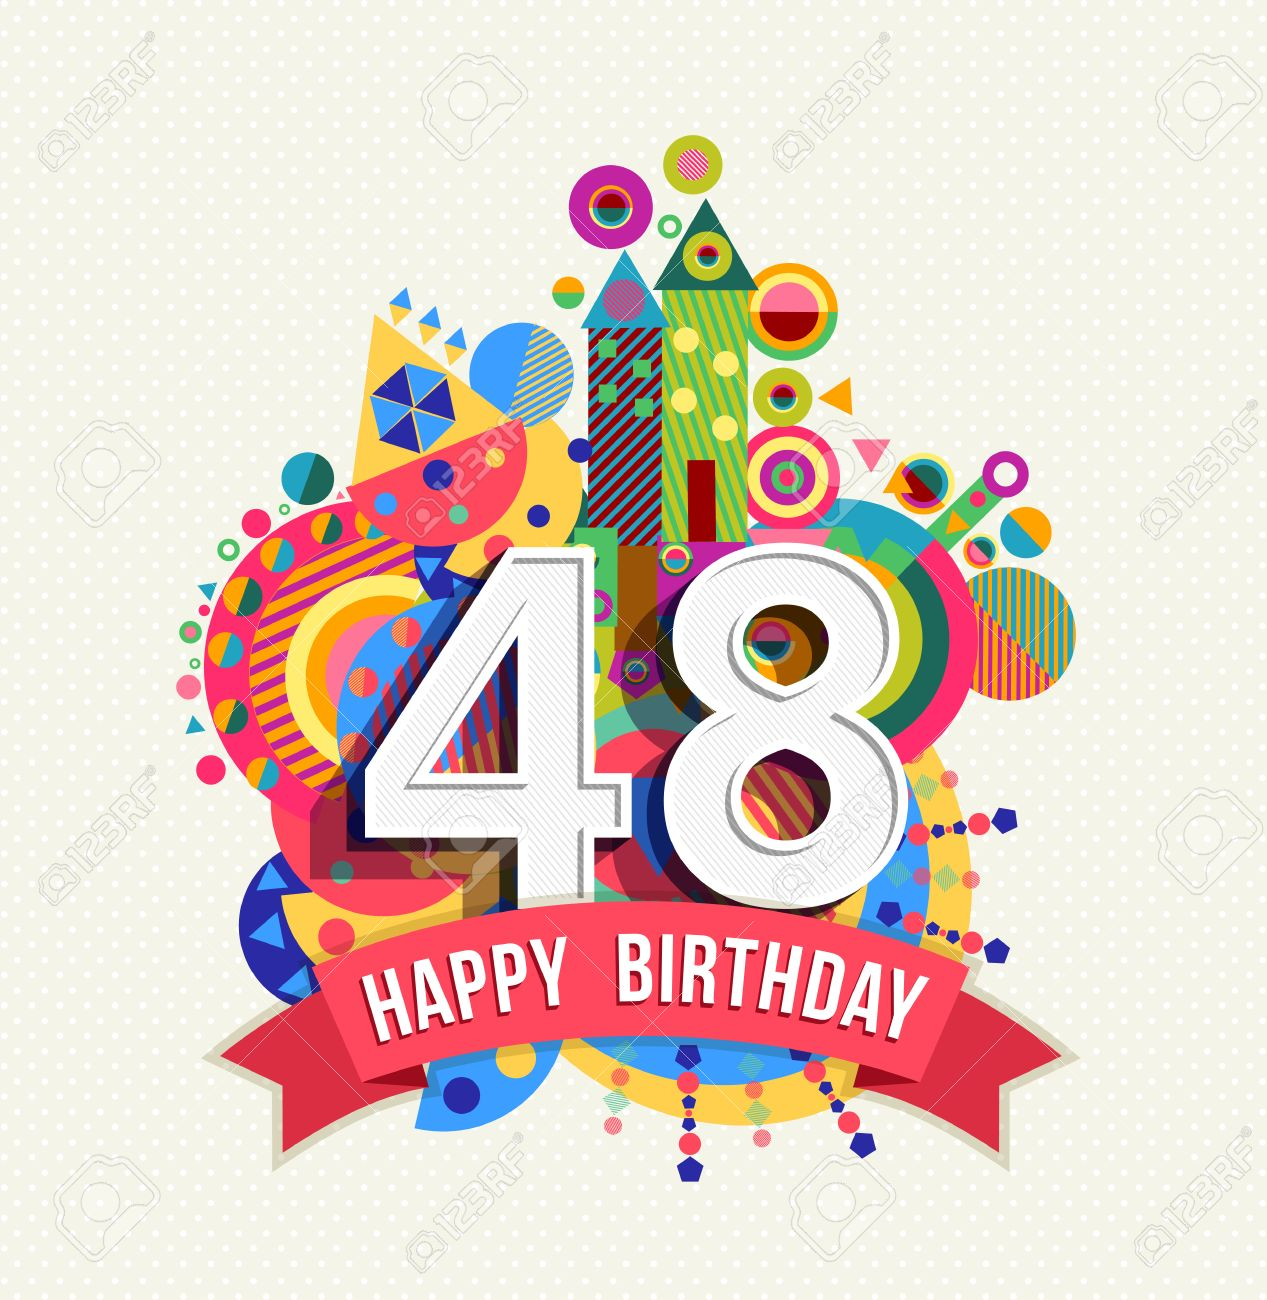 Happy Birthday Forty Eight 48 Year Fun Celebration Anniversary Greeting Card With Number